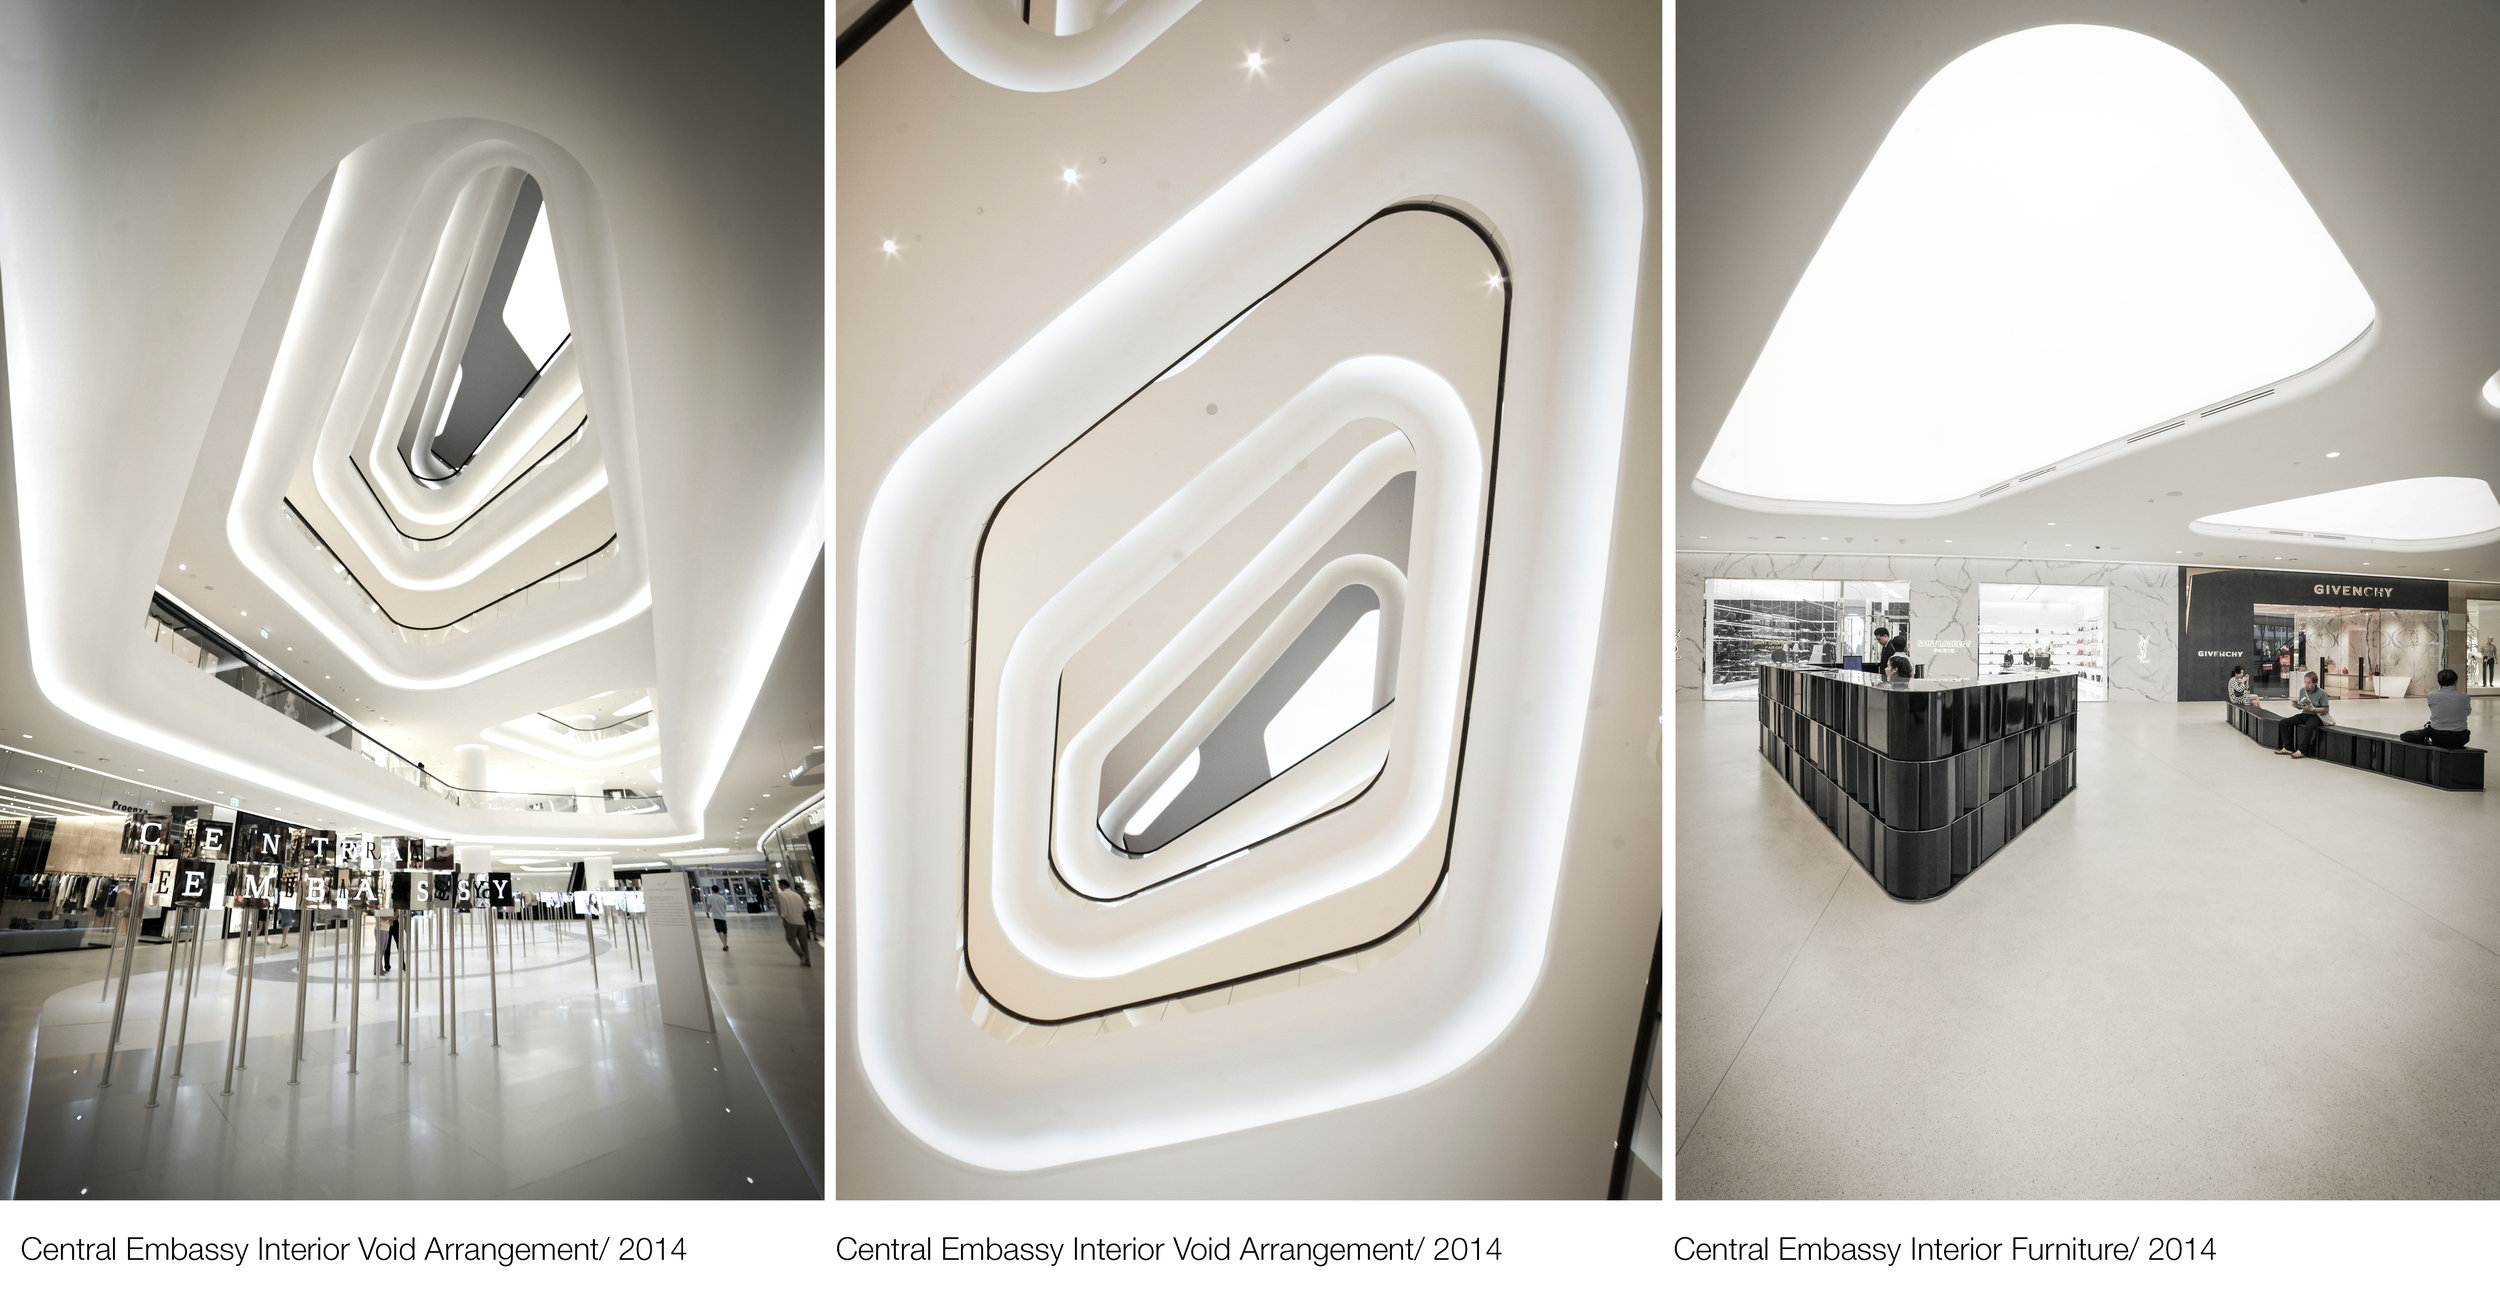 © Copyright Studio DS 2018 - Central Embassy Interior Design Voids As built